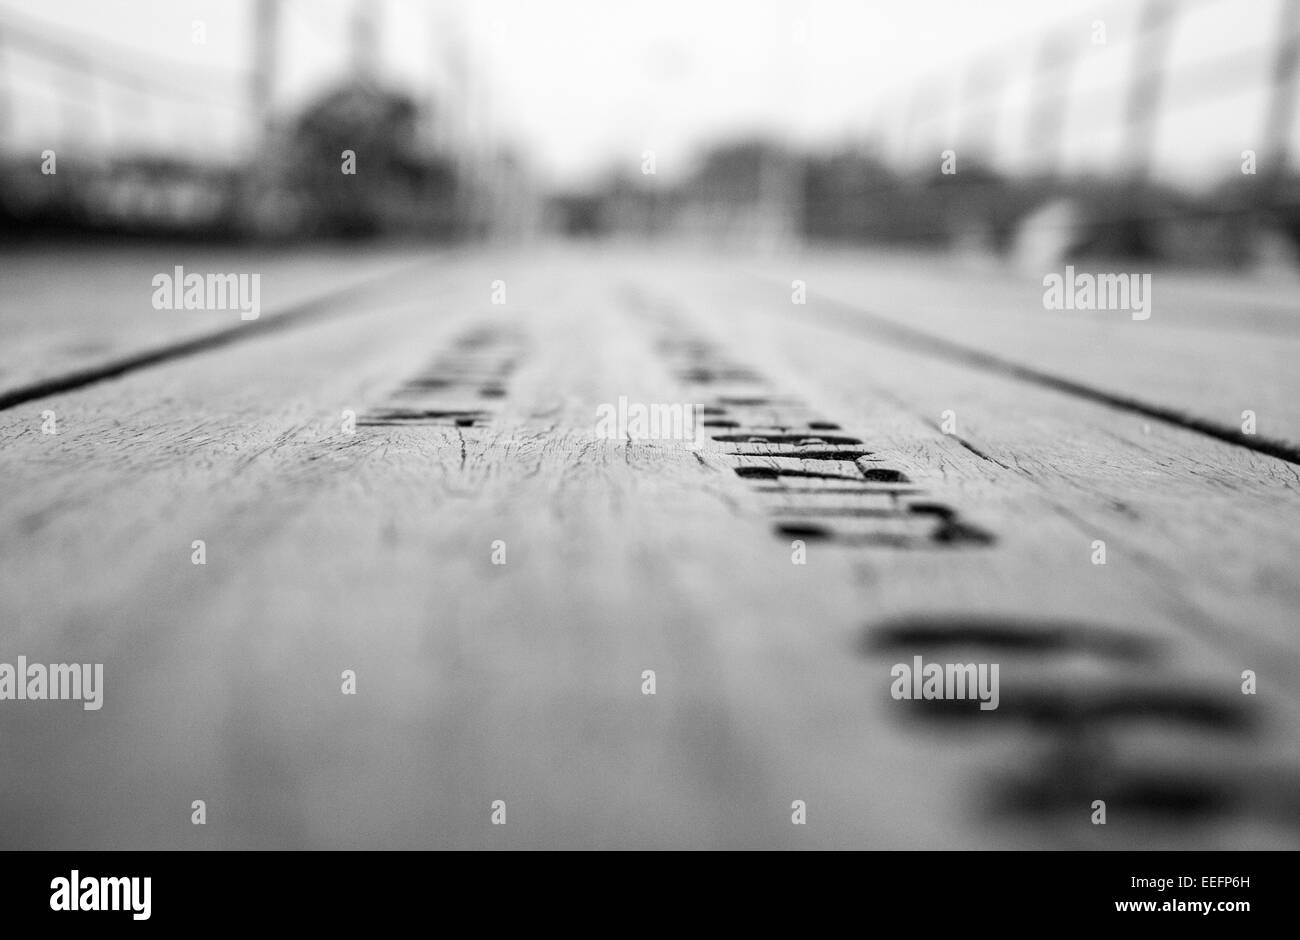 Shallow depth of field on the planks of Hythe Pier and the written memorials along the pier. - Stock Image